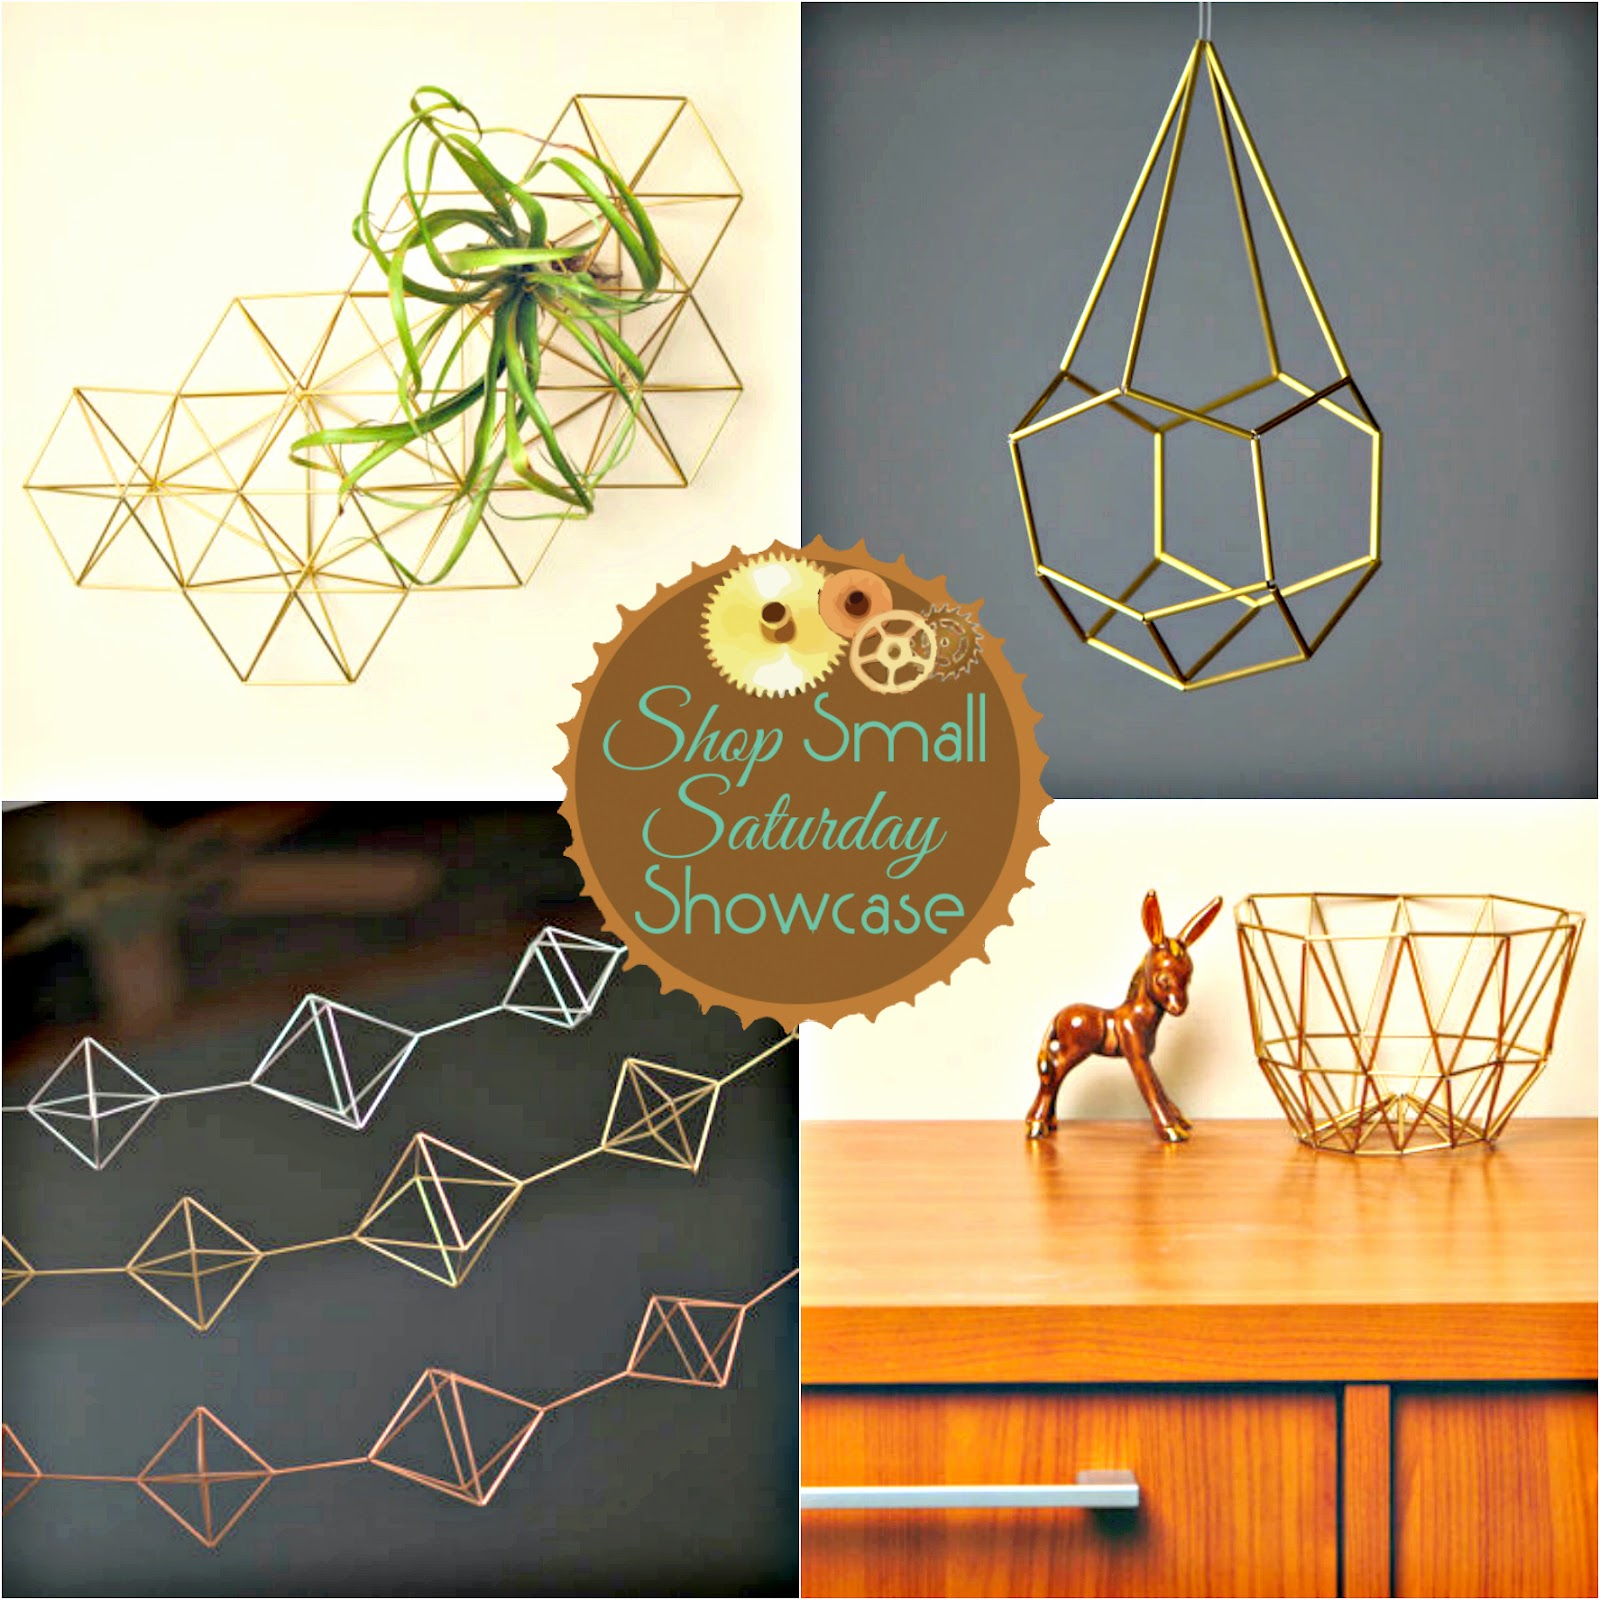 Spazz Happy Line Design feature & GIVEAWAY! on Shop Small Saturday Showcase at Diane's Vintage Zest! #unique #home #decor